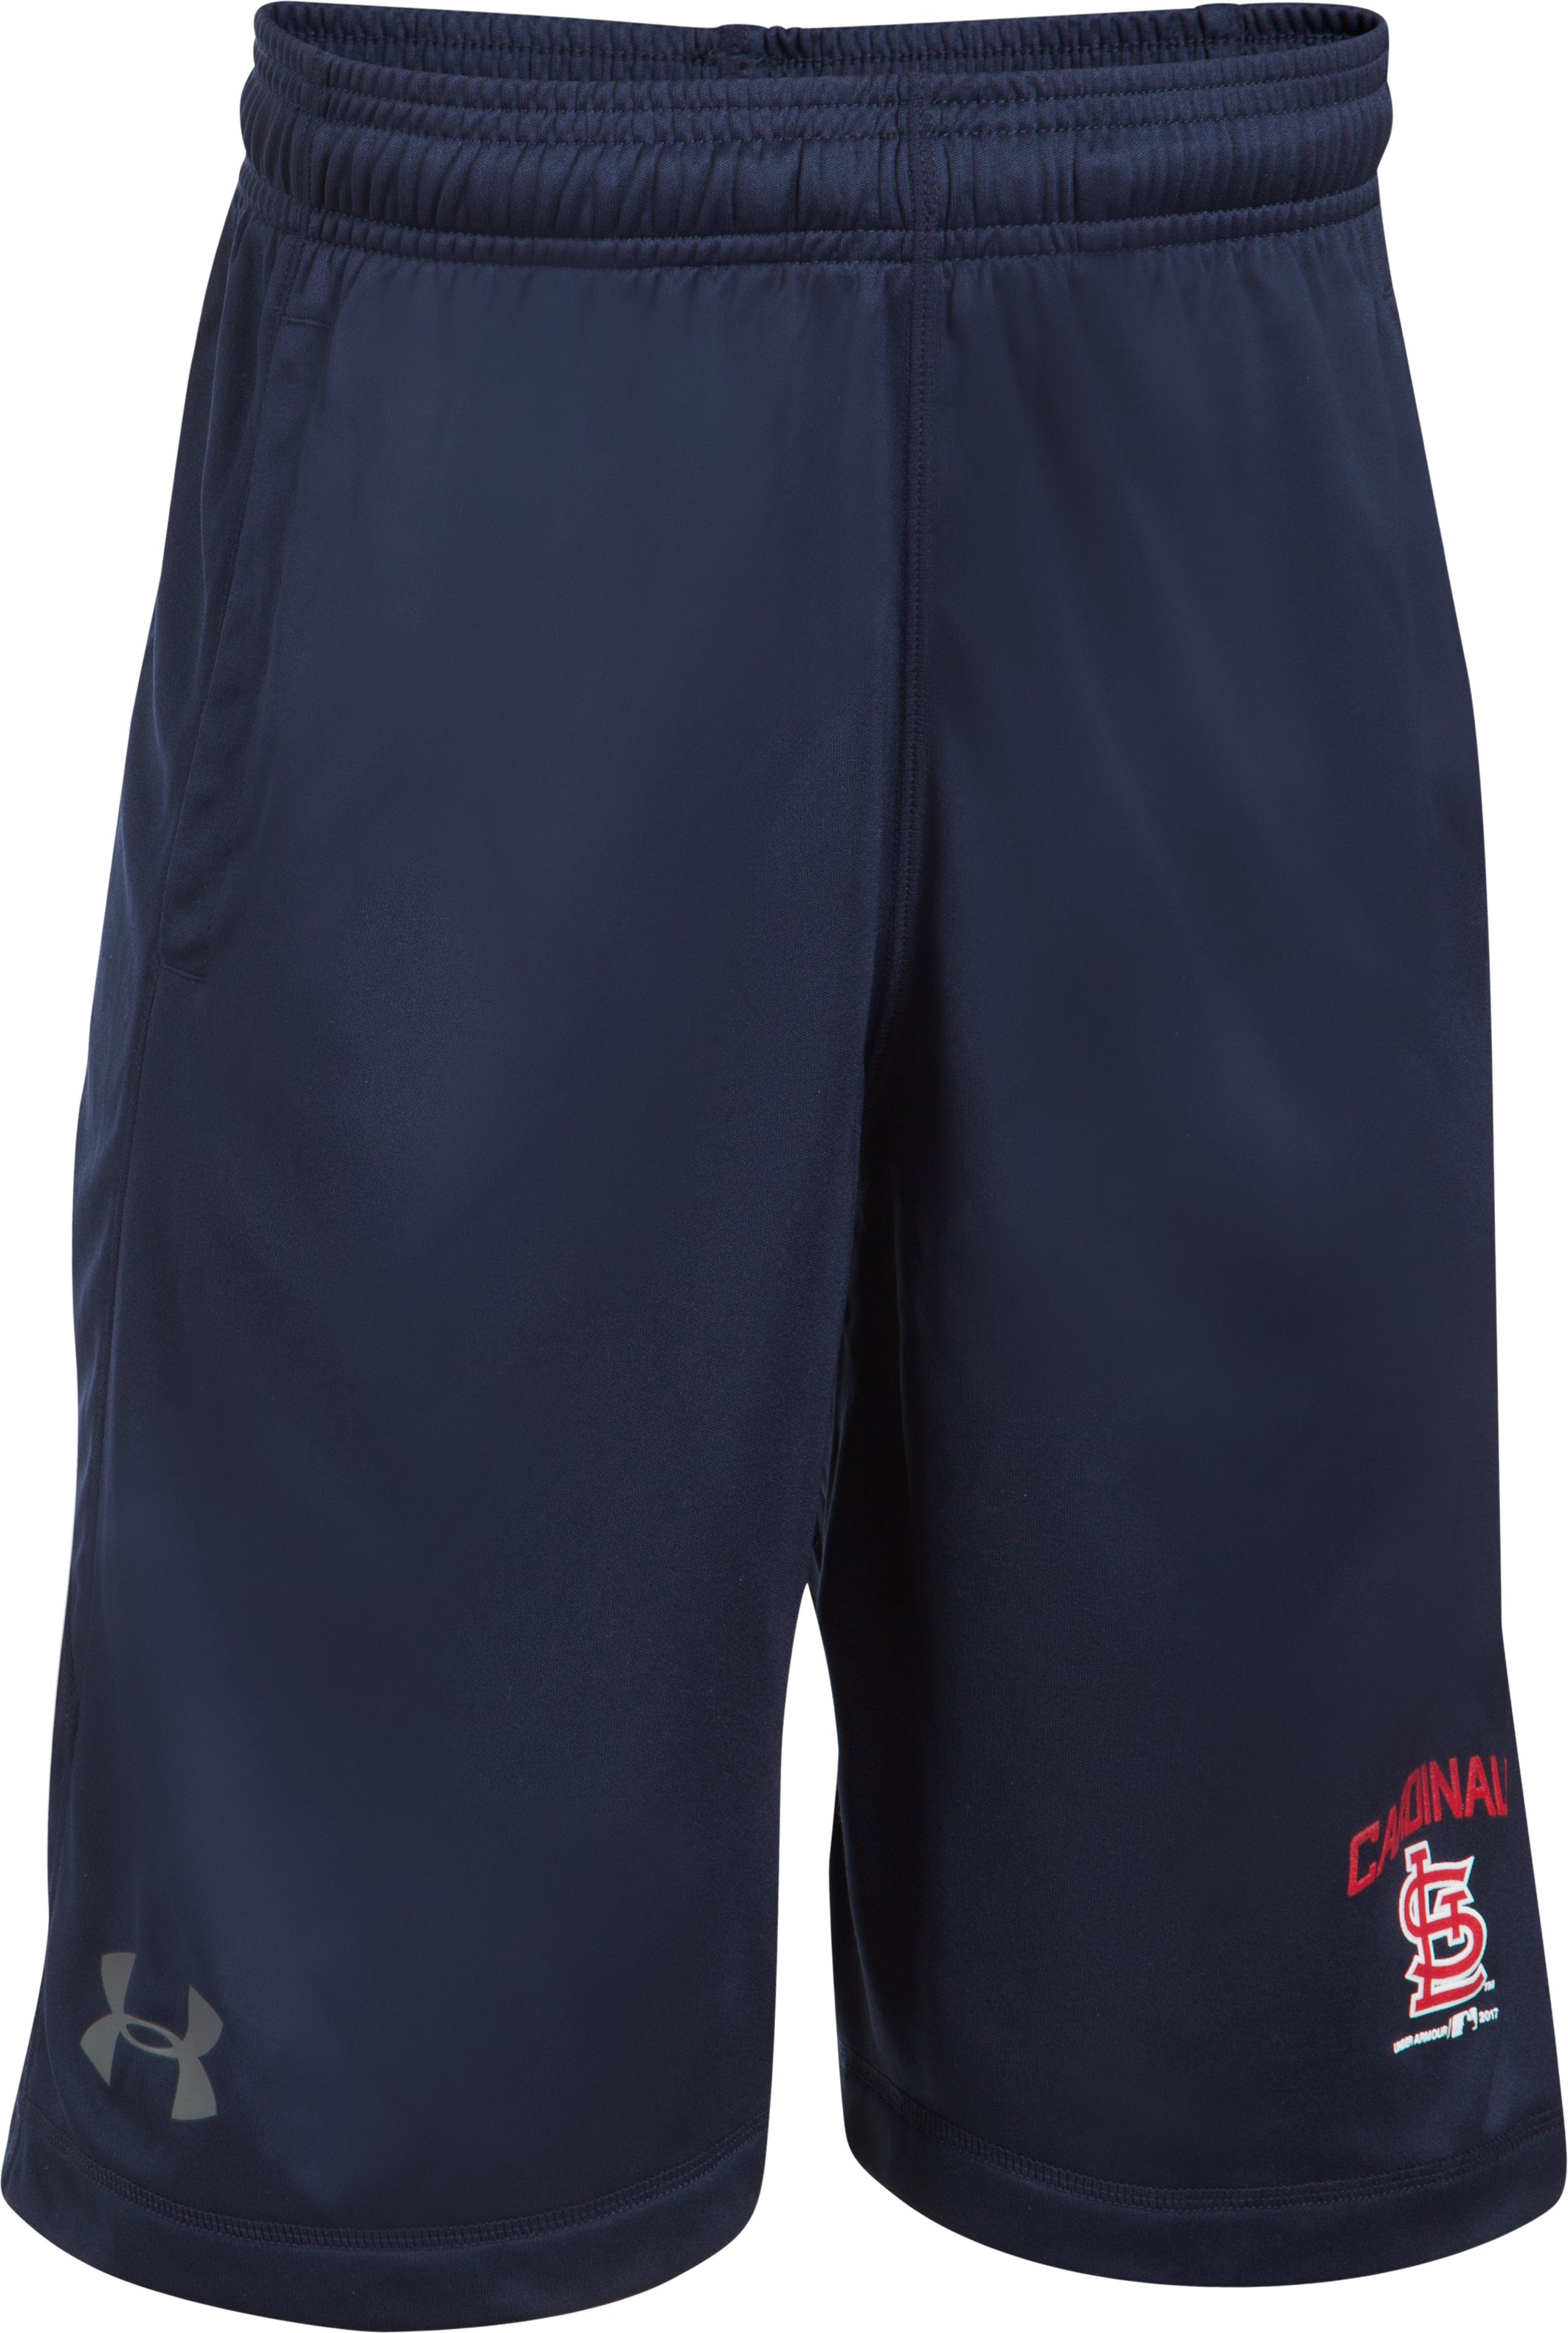 Boys' St. Louis Cardinals Training Shorts, Midnight Navy, undefined